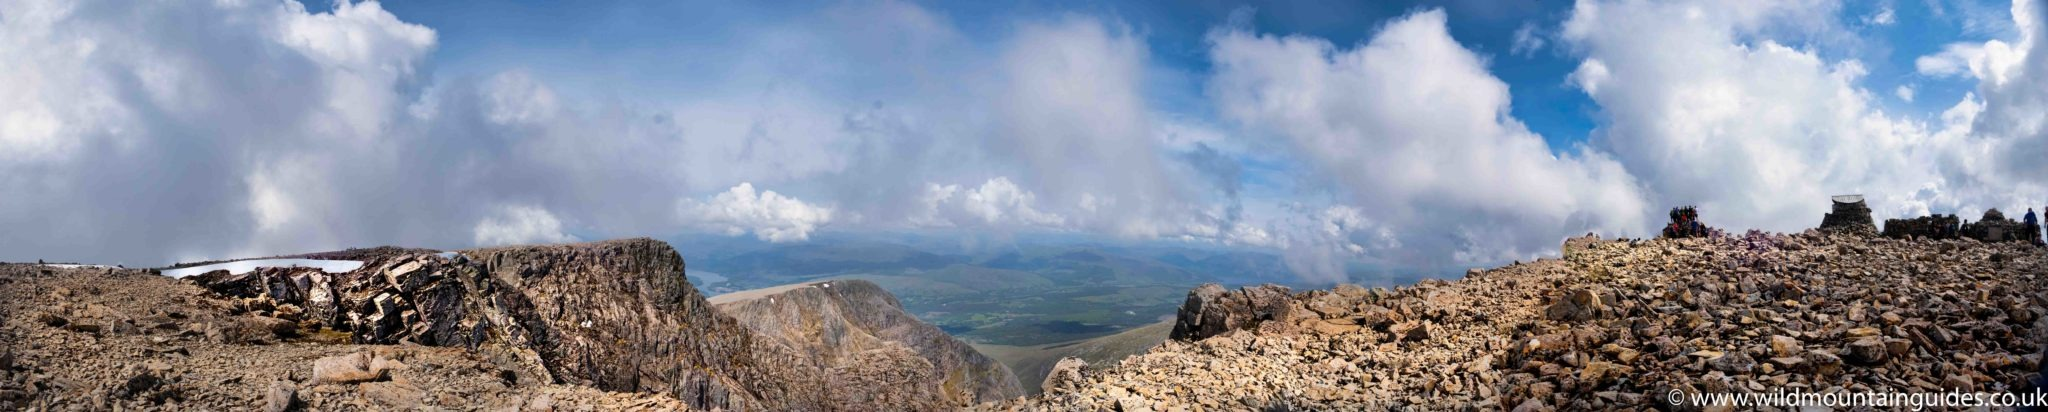 Looking across the top of Tower Ridge from the summit of Ben Nevis